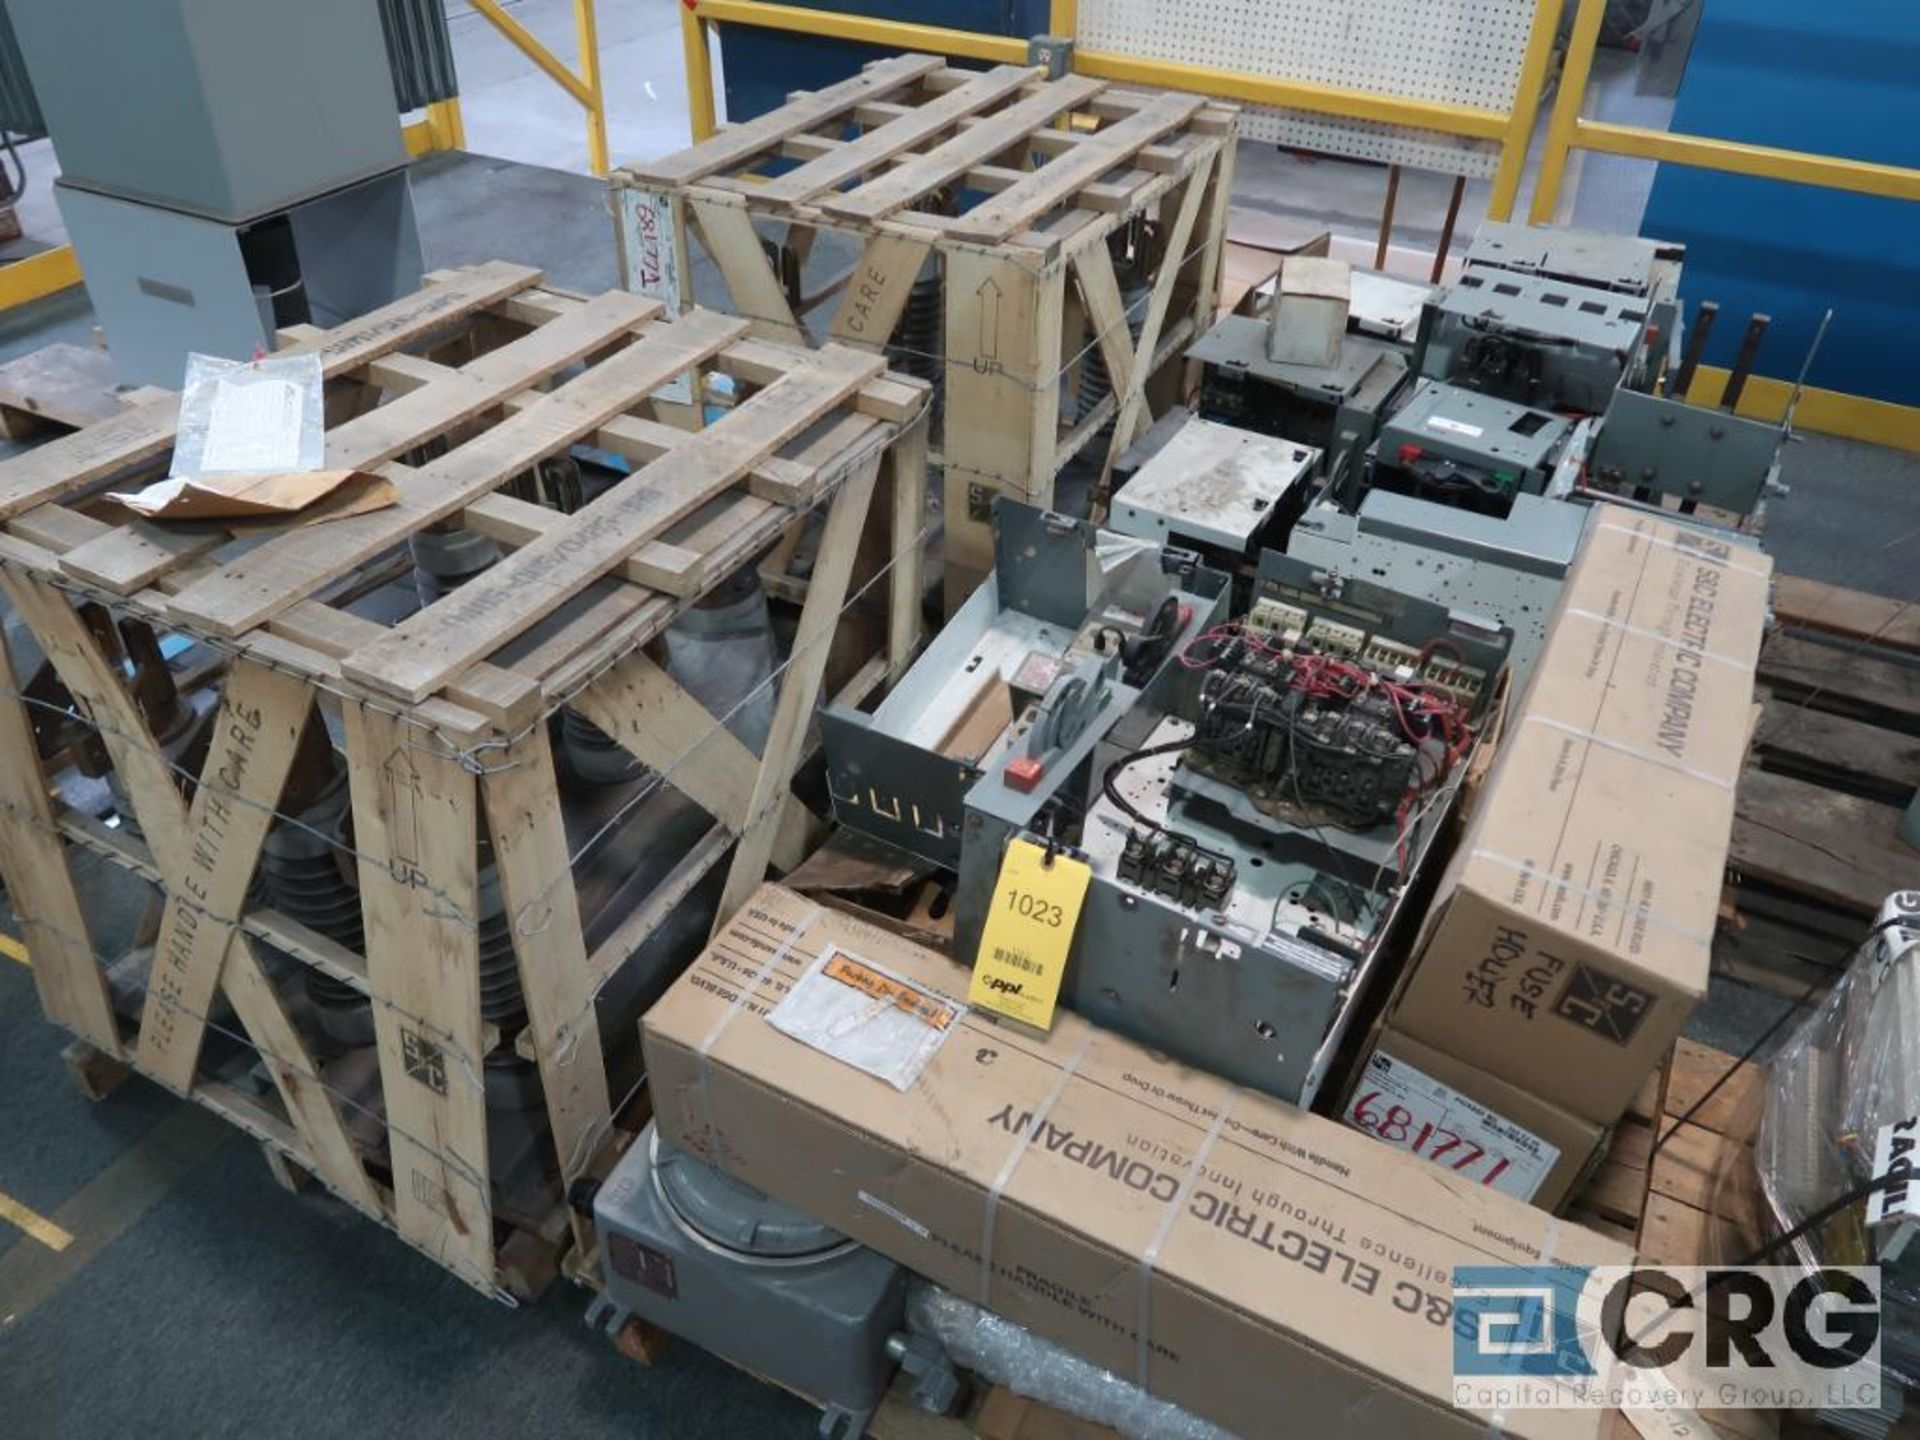 Lot of (8) pallets of electrical including fuse holders, amgard, and breakers (Finish Building)